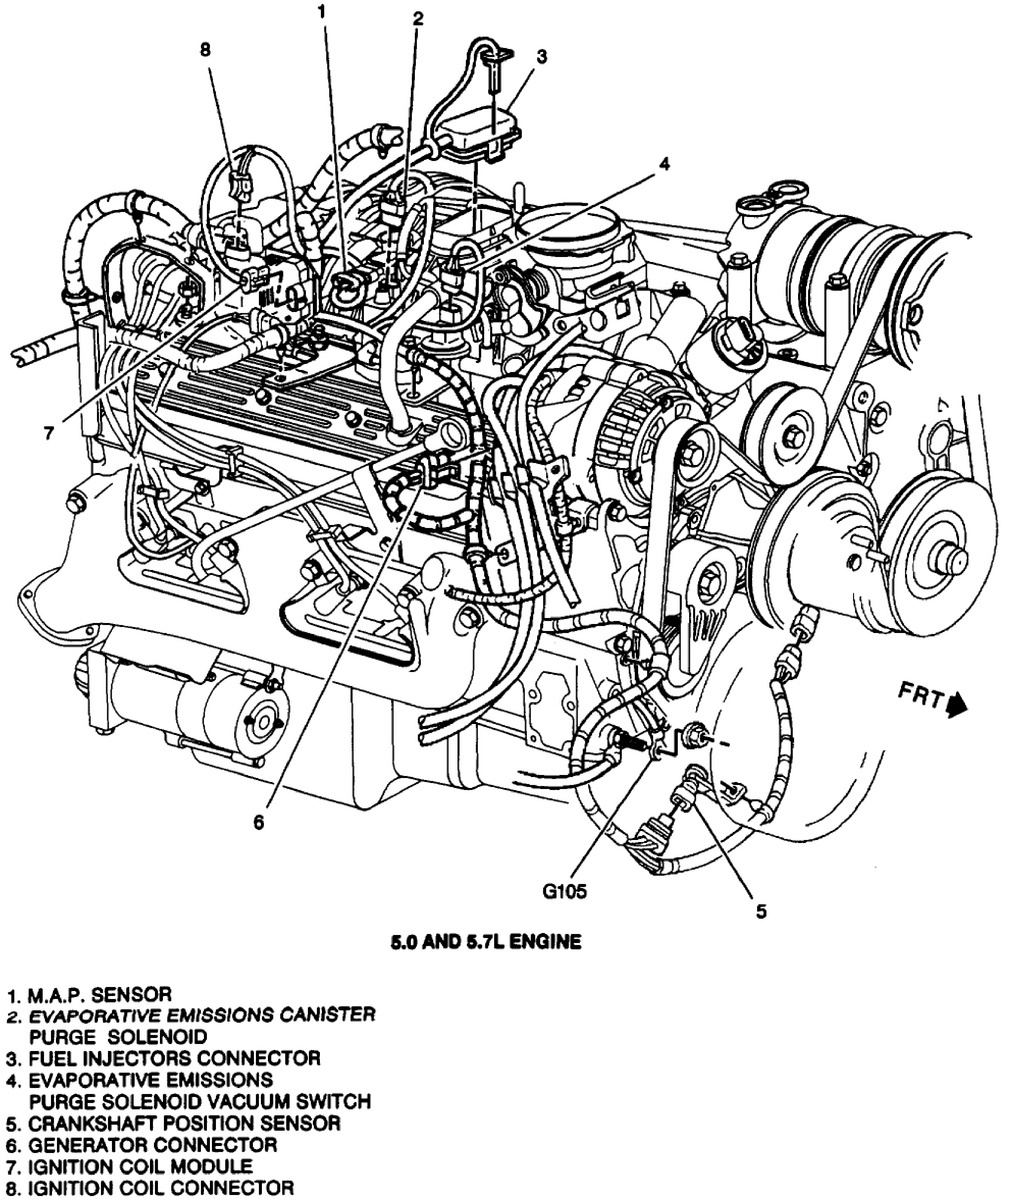 hight resolution of 1993 chevy engine diagram wiring diagram yer 1993 chevy s10 engine diagram 1993 chevy engine diagram